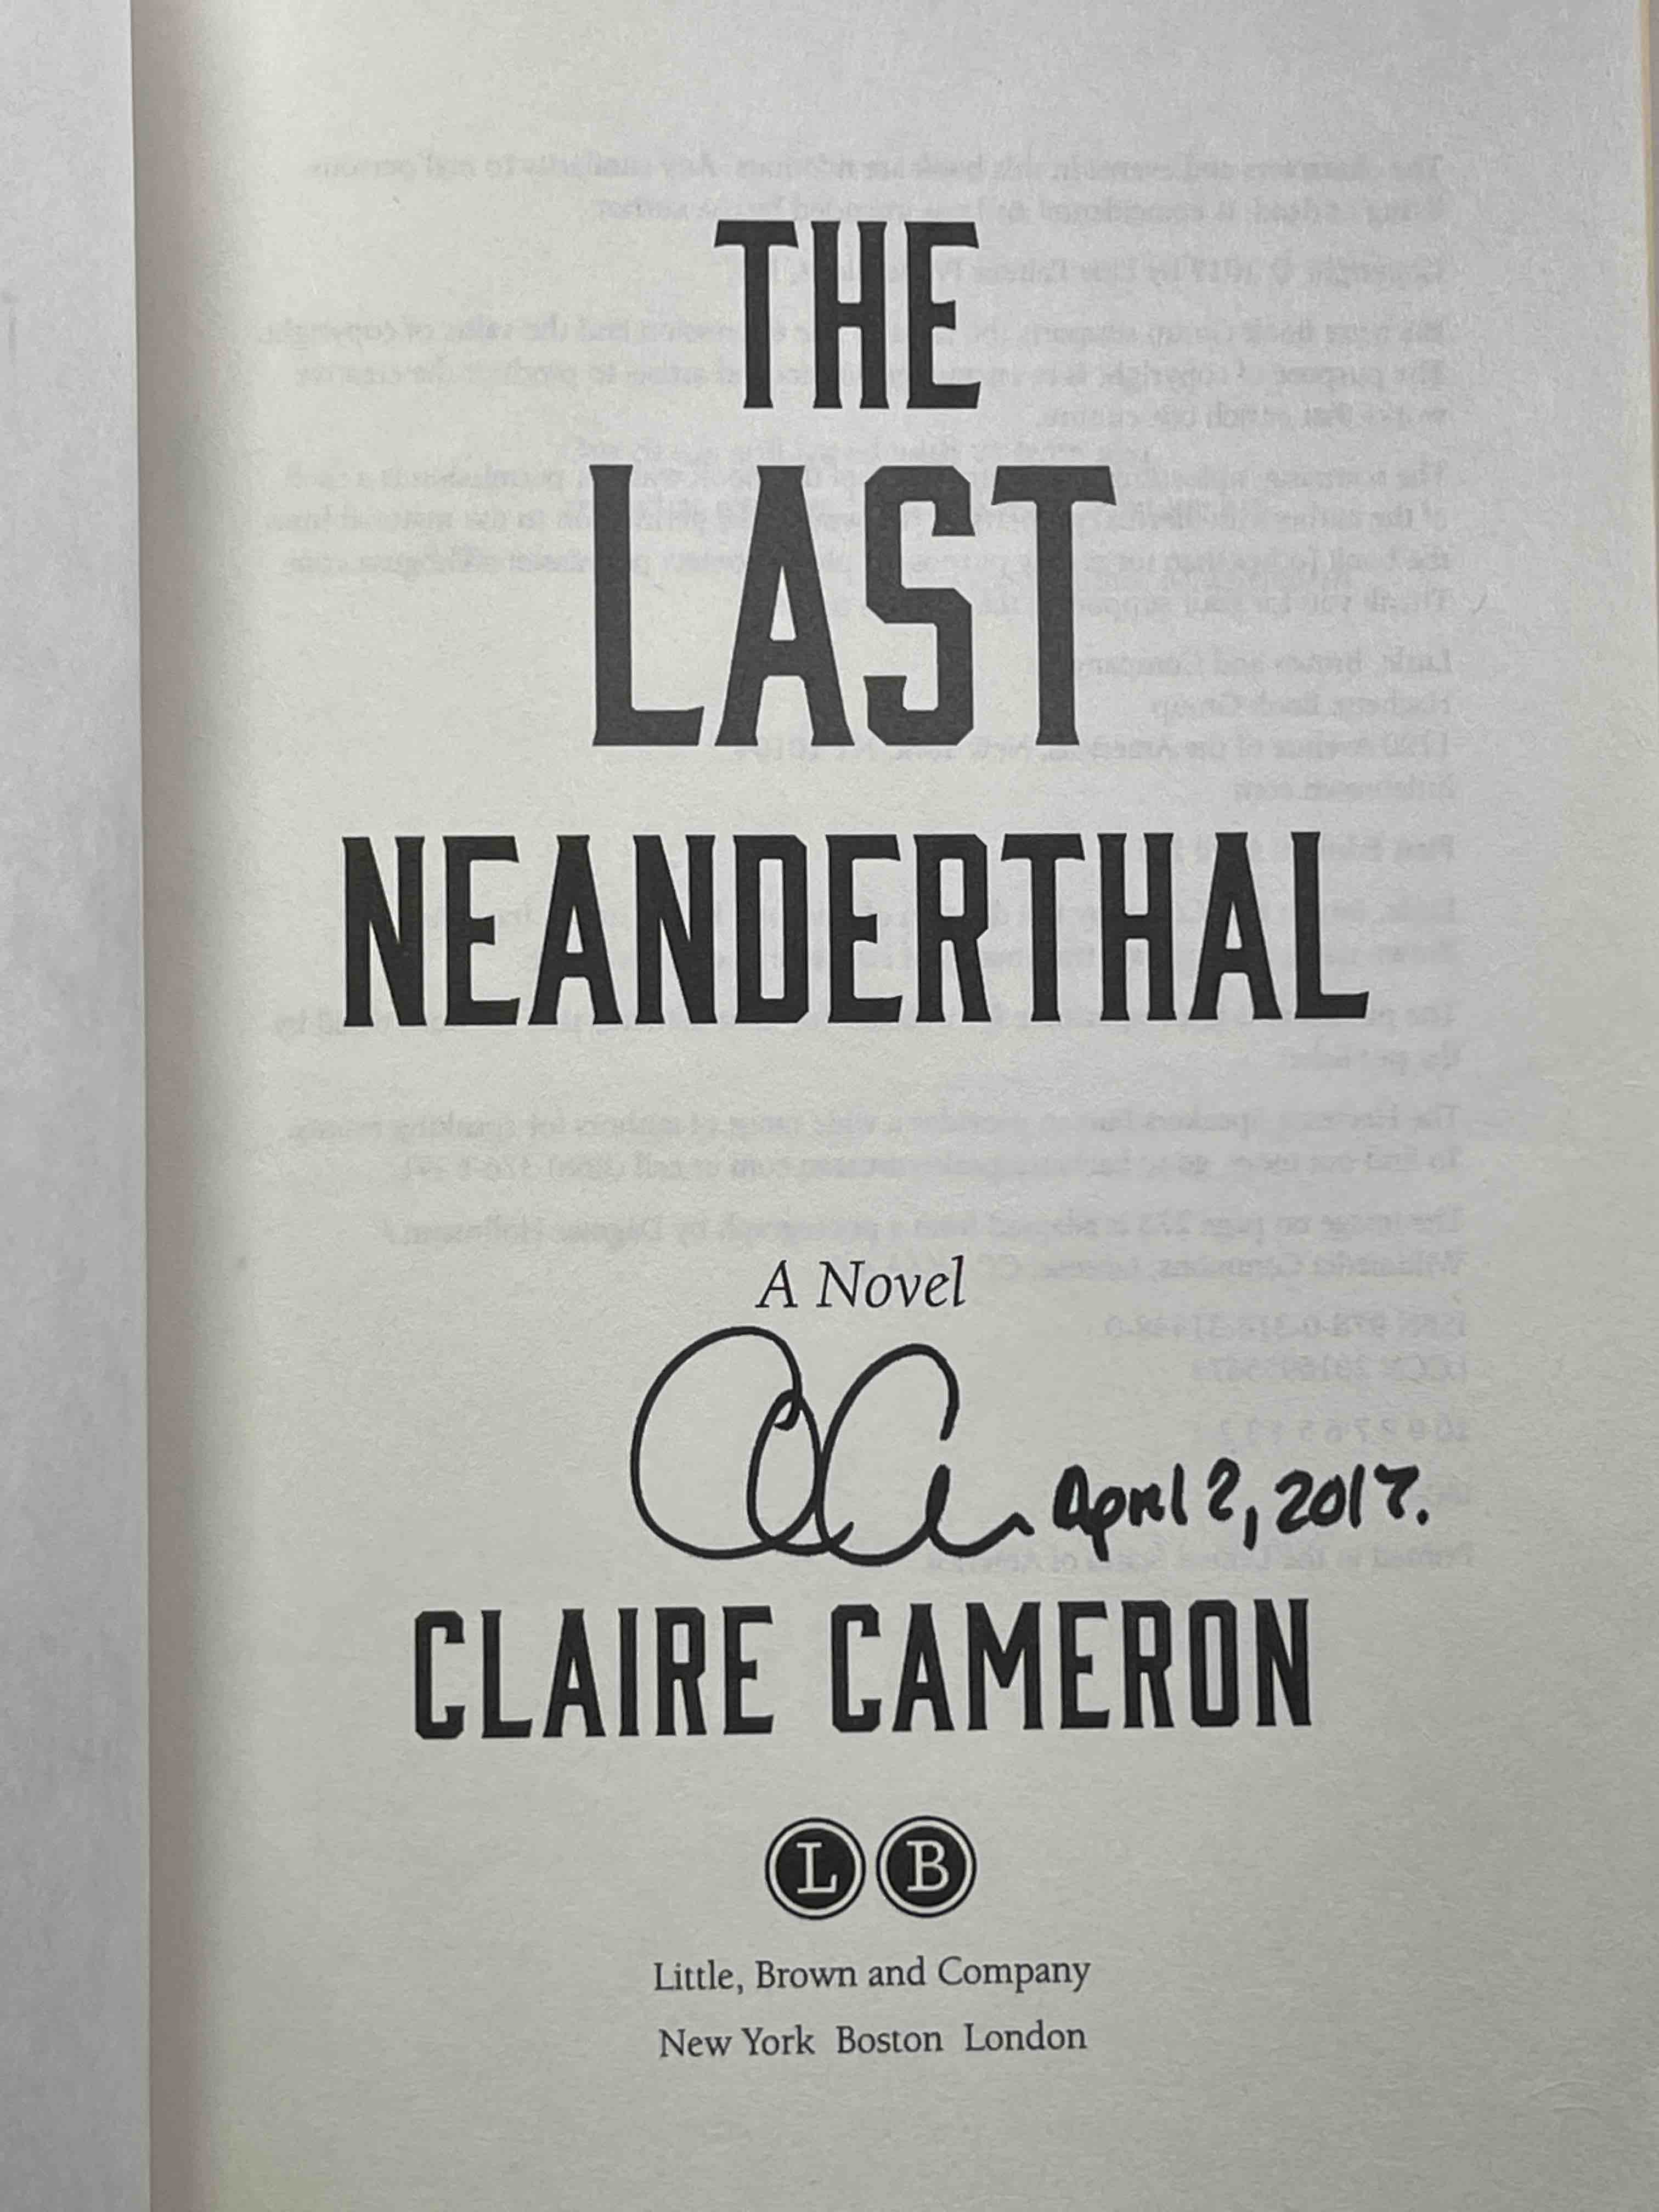 CAMERON, CLARE. - THE LAST NEANDERTHAL.